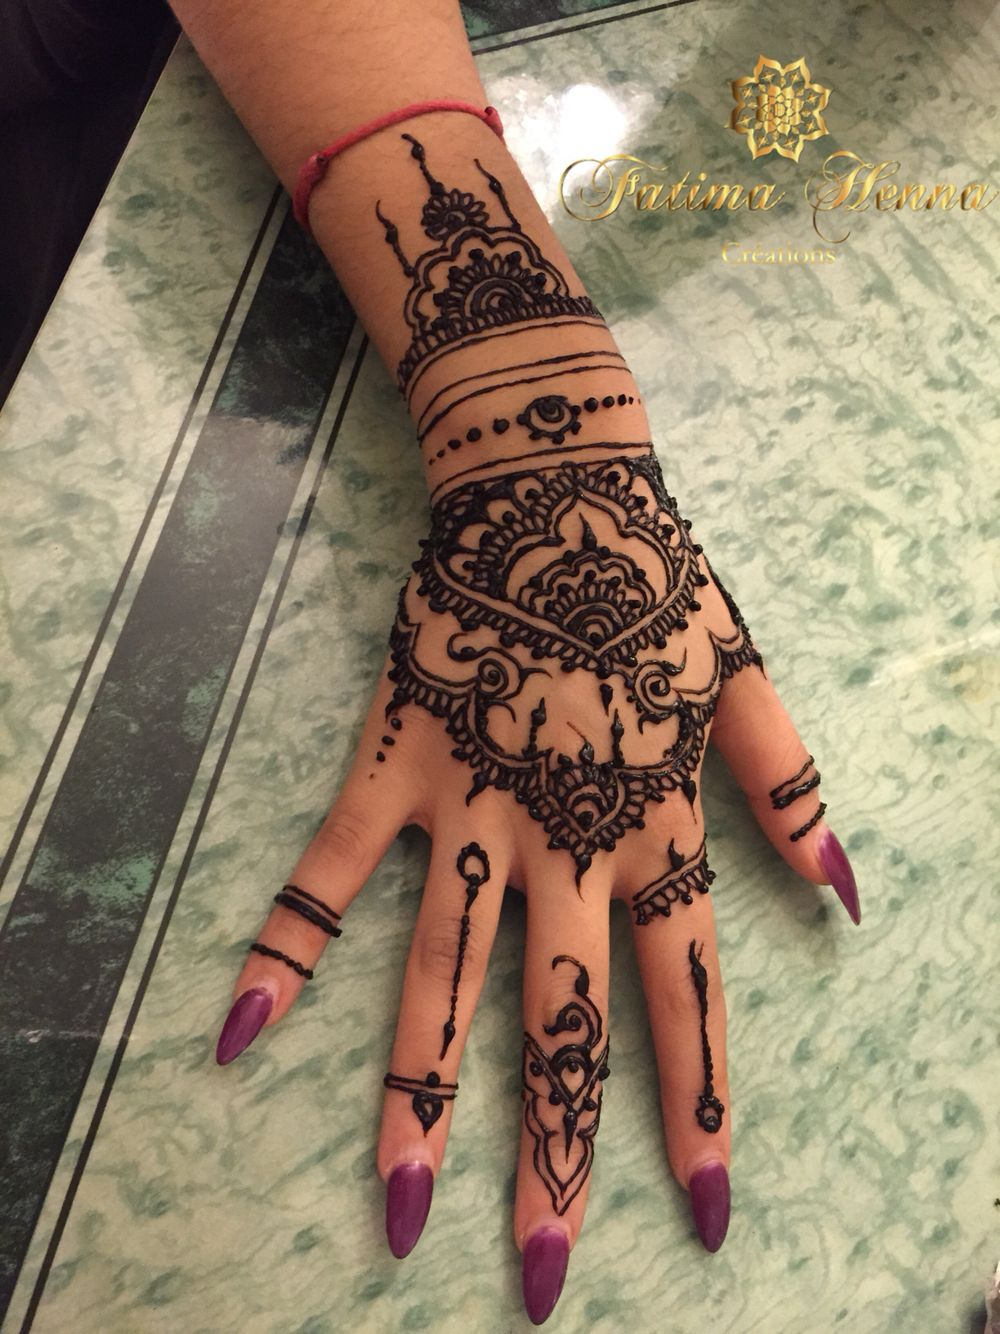 inspiration rihanna mehndi pinterest rihanna henna and rihanna hand tattoo. Black Bedroom Furniture Sets. Home Design Ideas